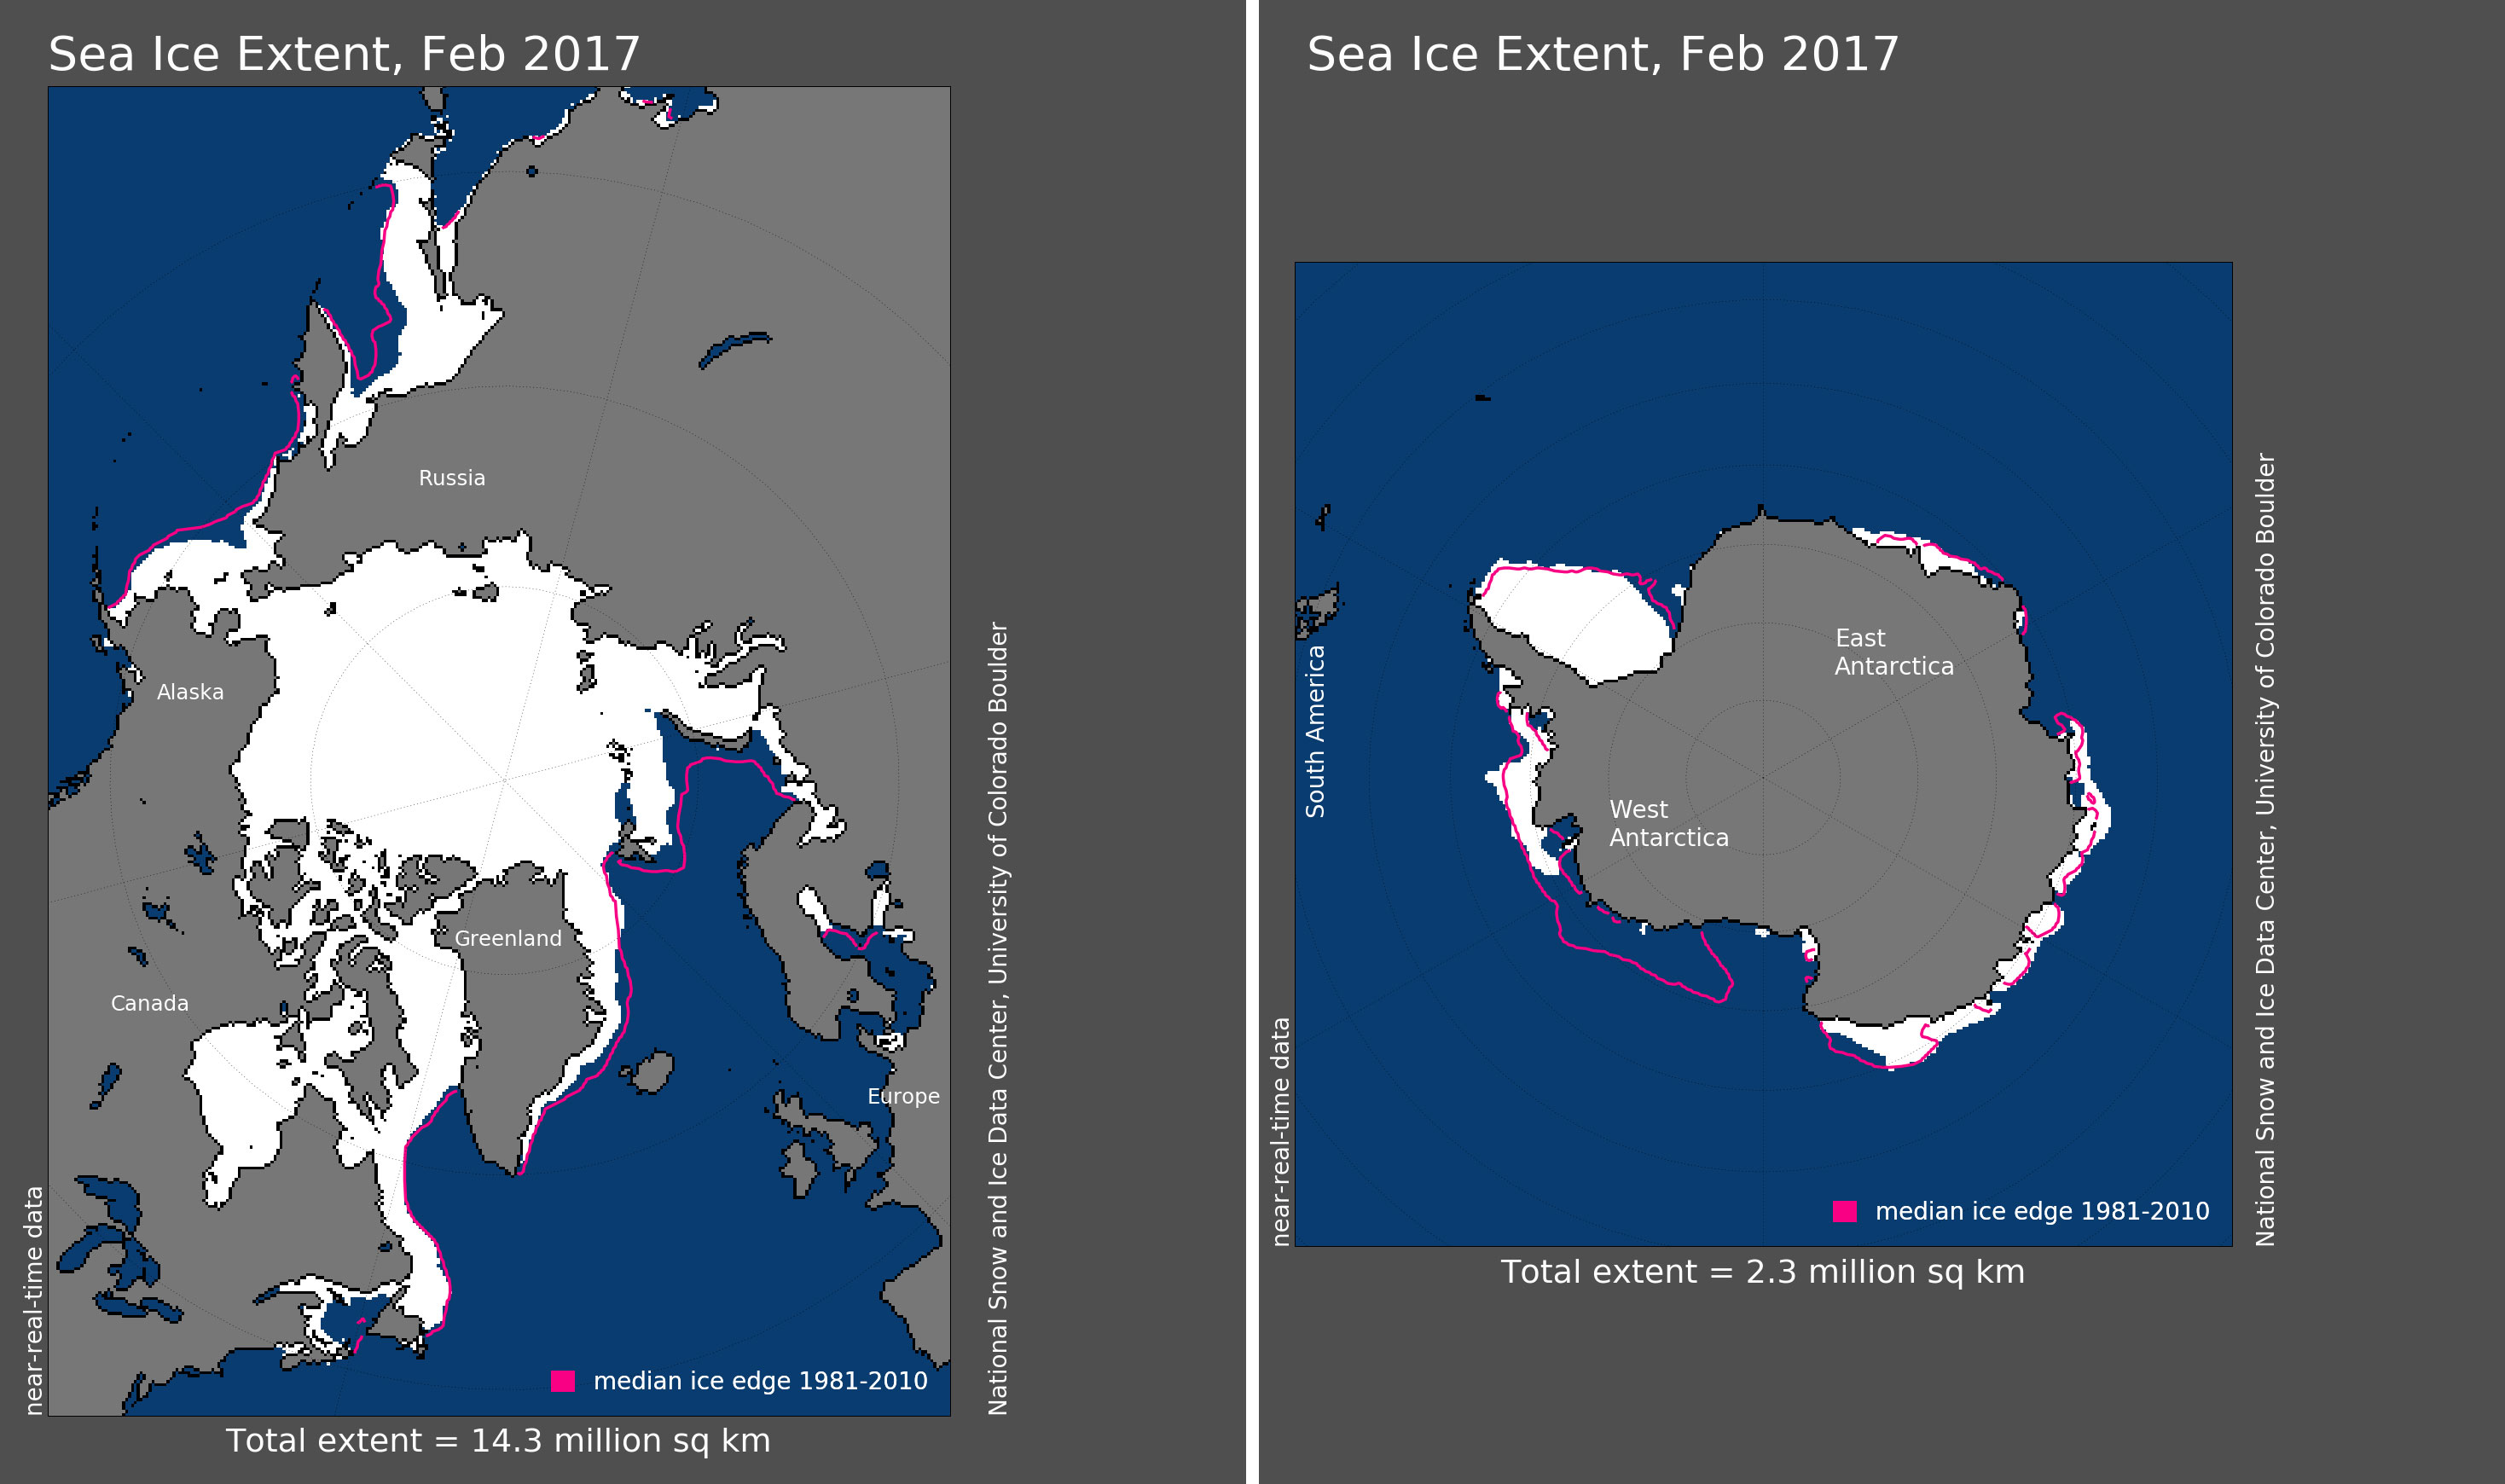 Maps of Arctic and Antarctic sea ice extent in February 2017